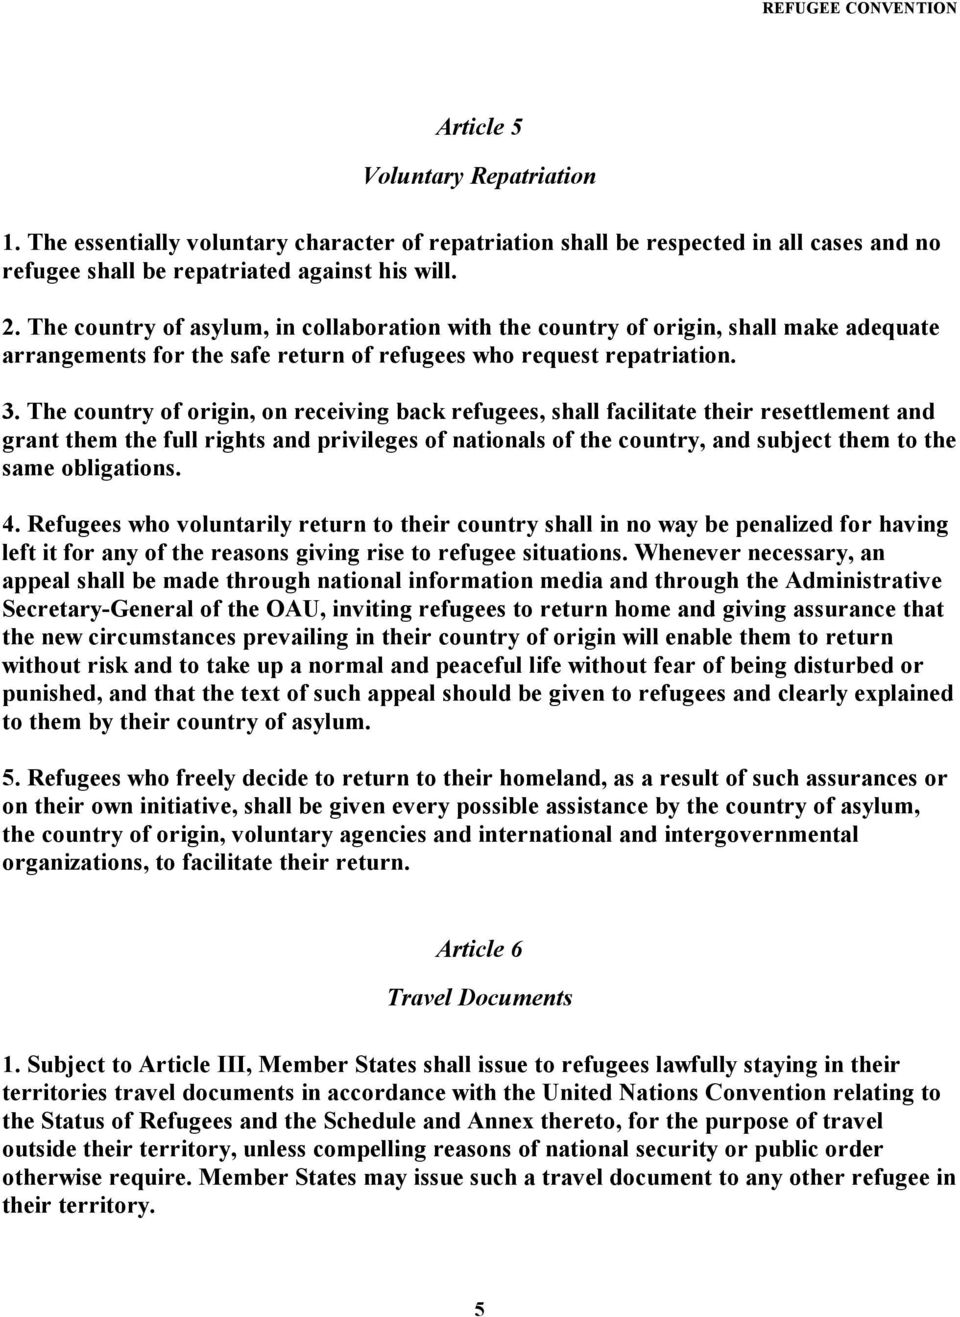 The country of origin, on receiving back refugees, shall facilitate their resettlement and grant them the full rights and privileges of nationals of the country, and subject them to the same